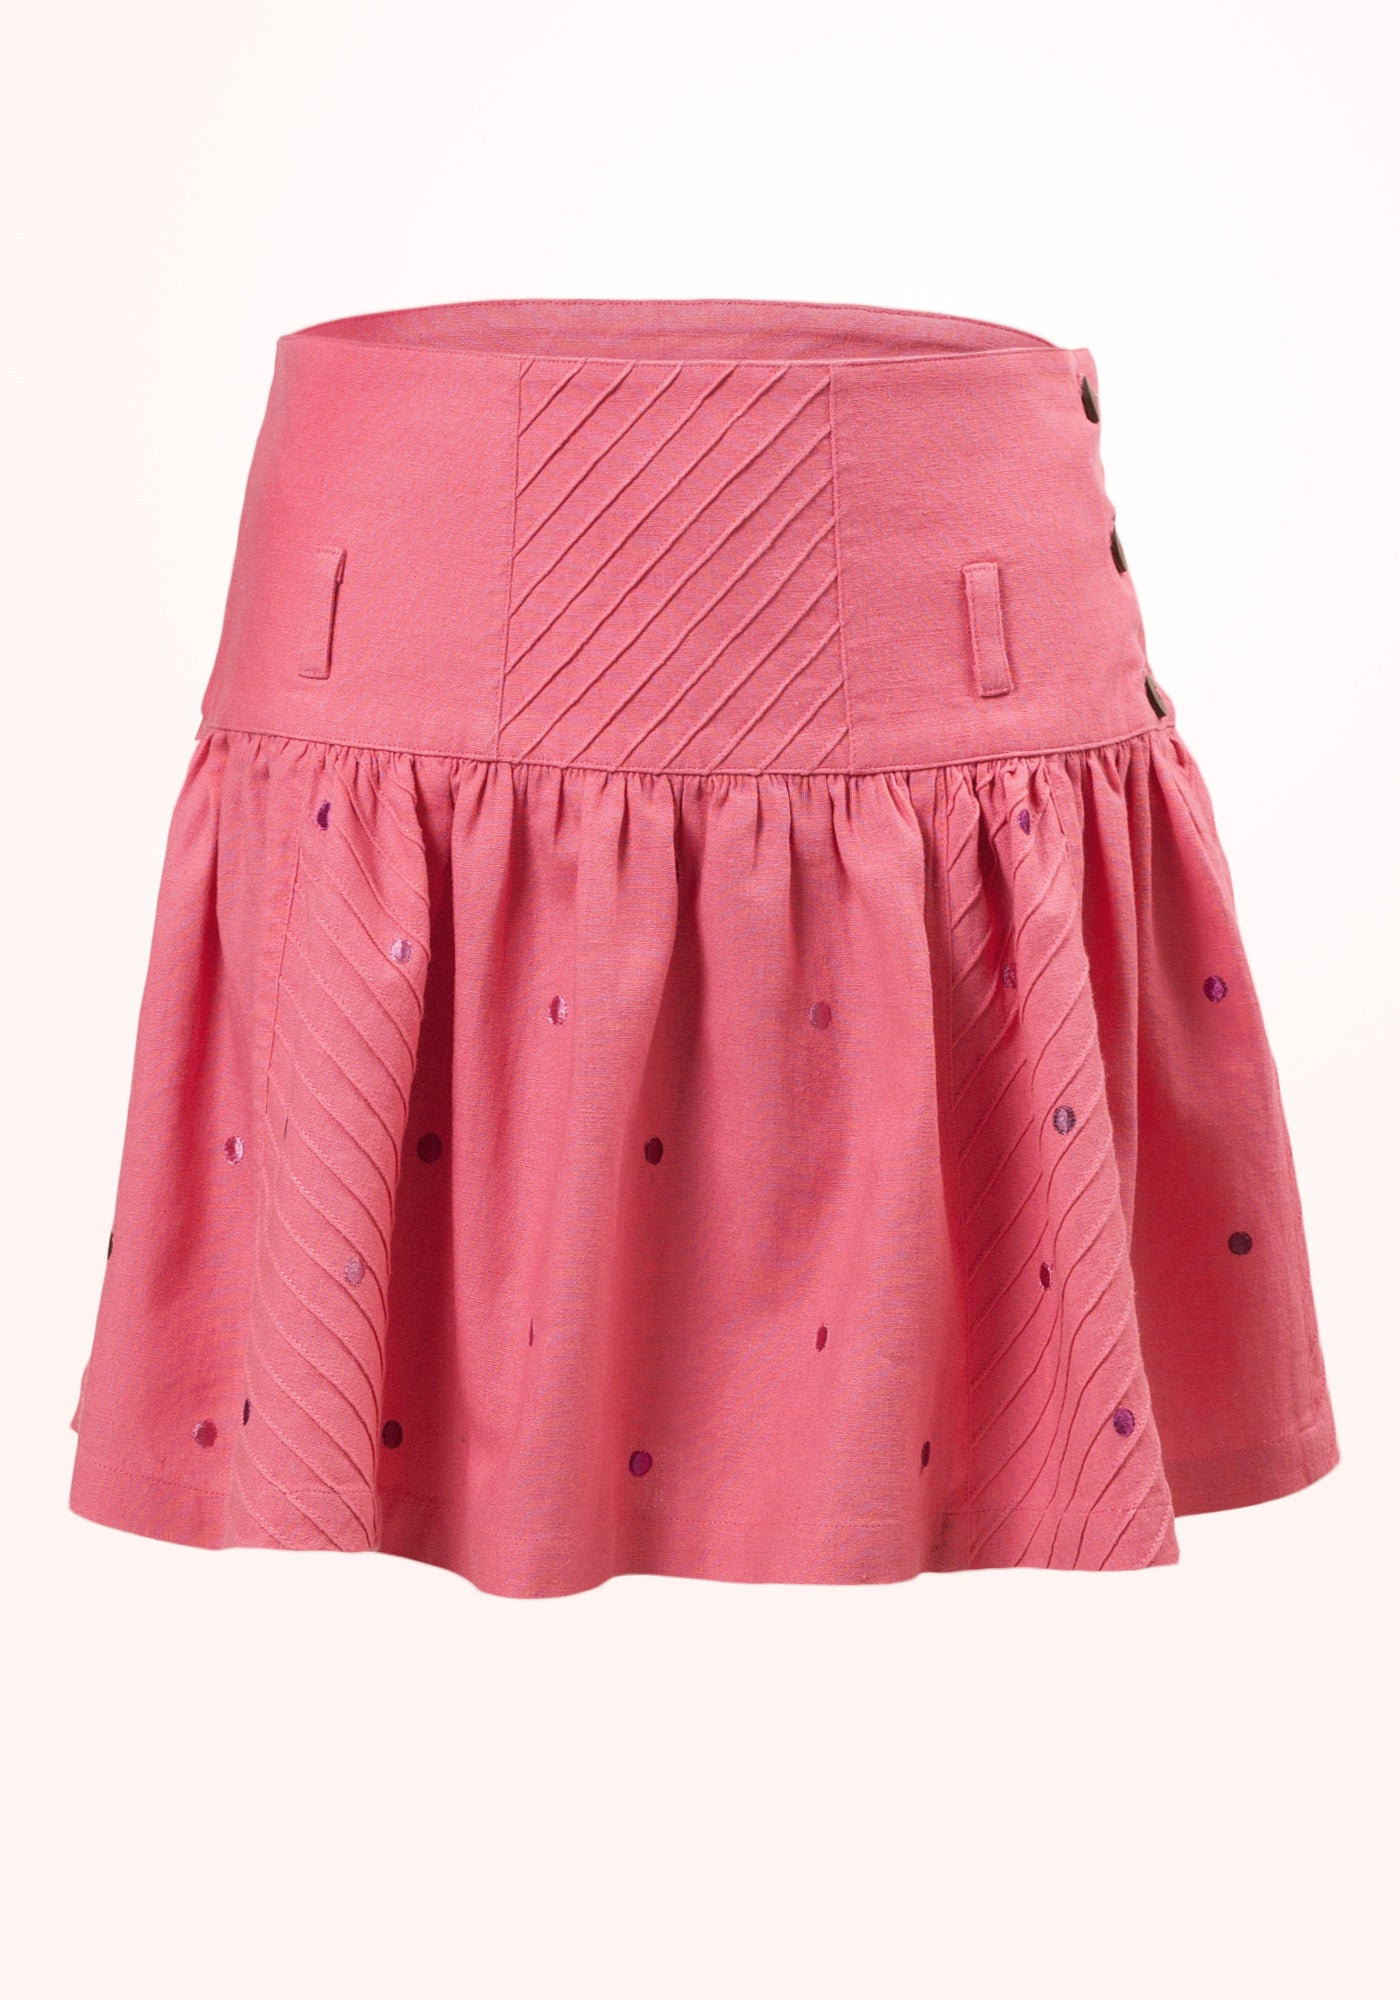 Bubblegum Girls Skirt in Pink Linen - MINC ecofashion